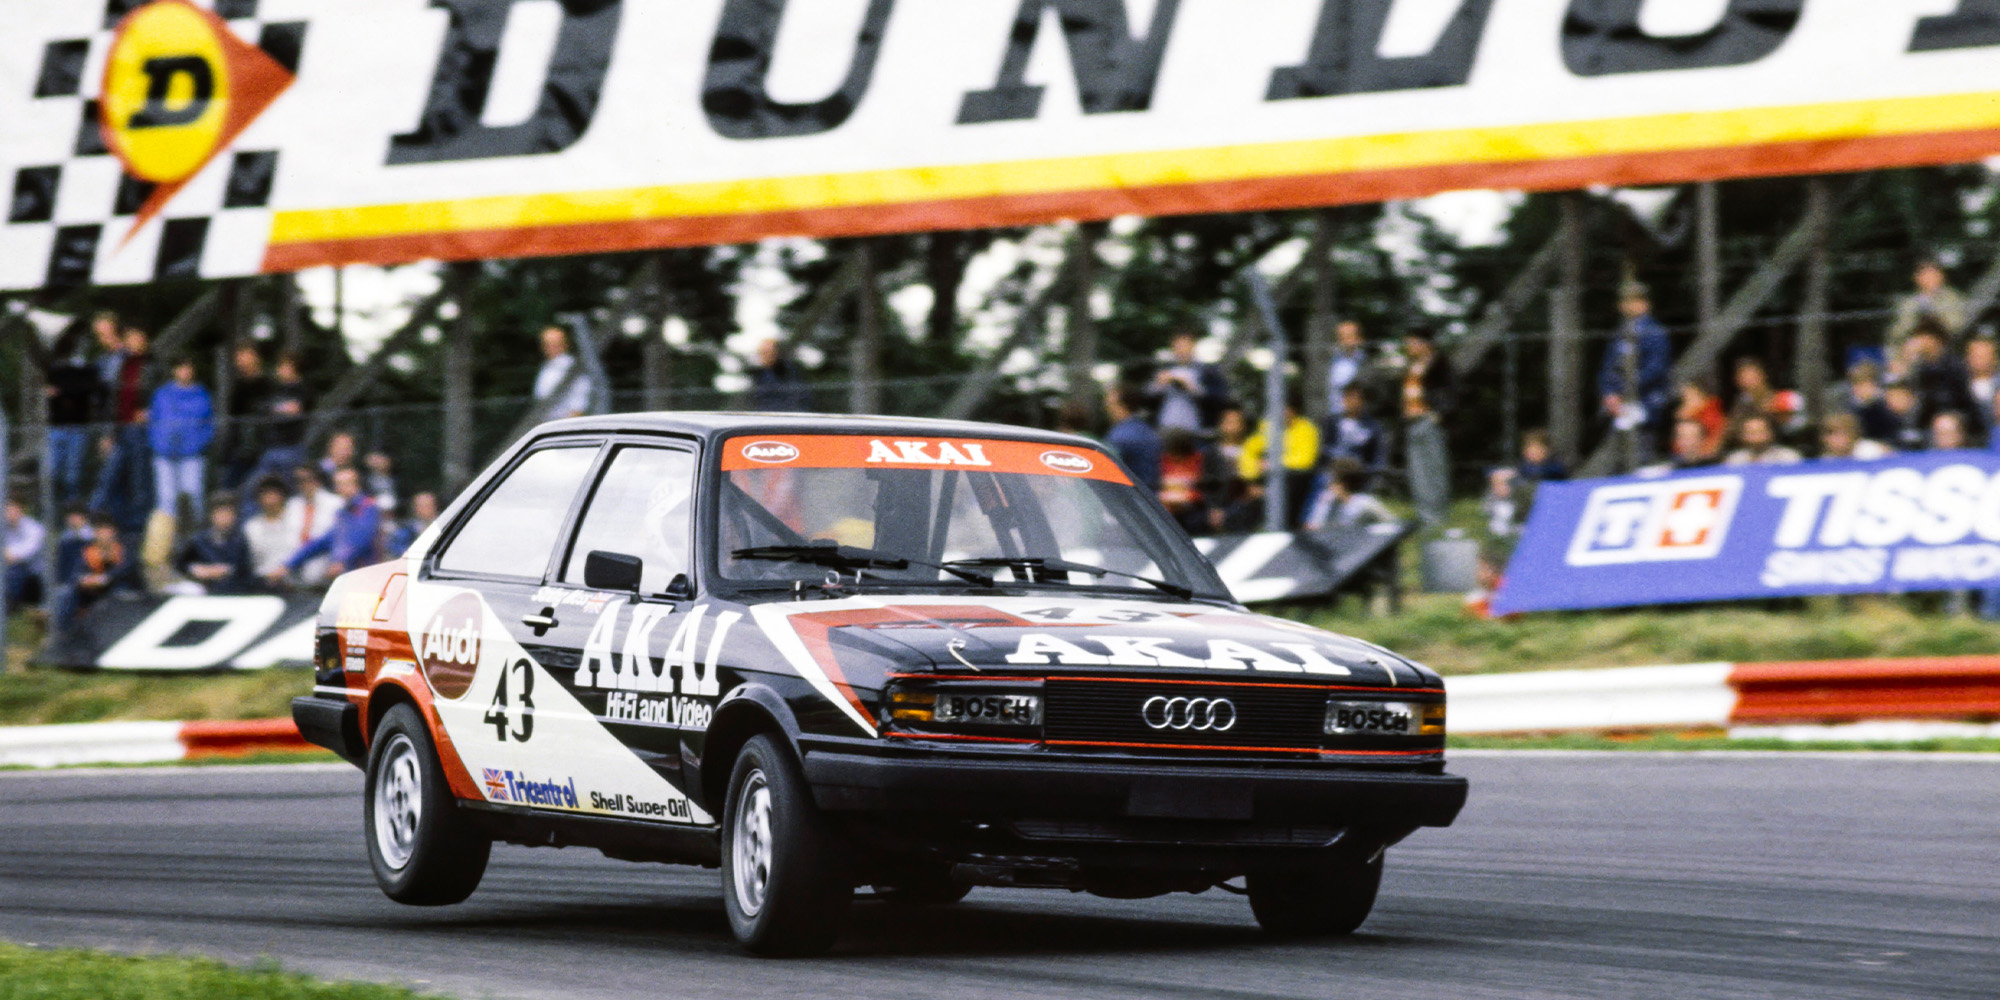 Stirling Moss' Audi lifts a wheel in the British Saloon Car Championship